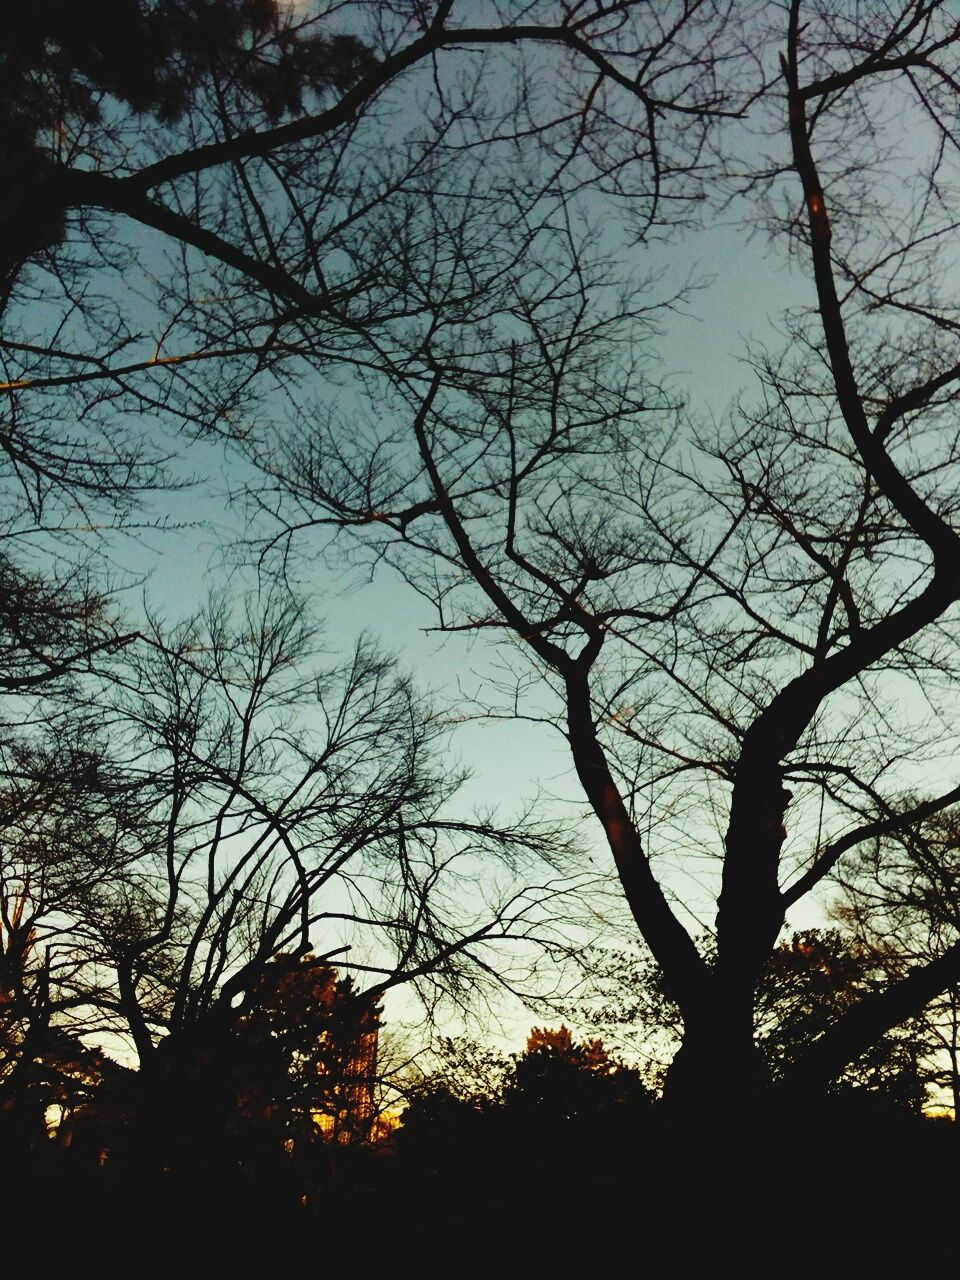 tree, bare tree, silhouette, branch, nature, tranquility, low angle view, no people, beauty in nature, sky, outdoors, scenics, day